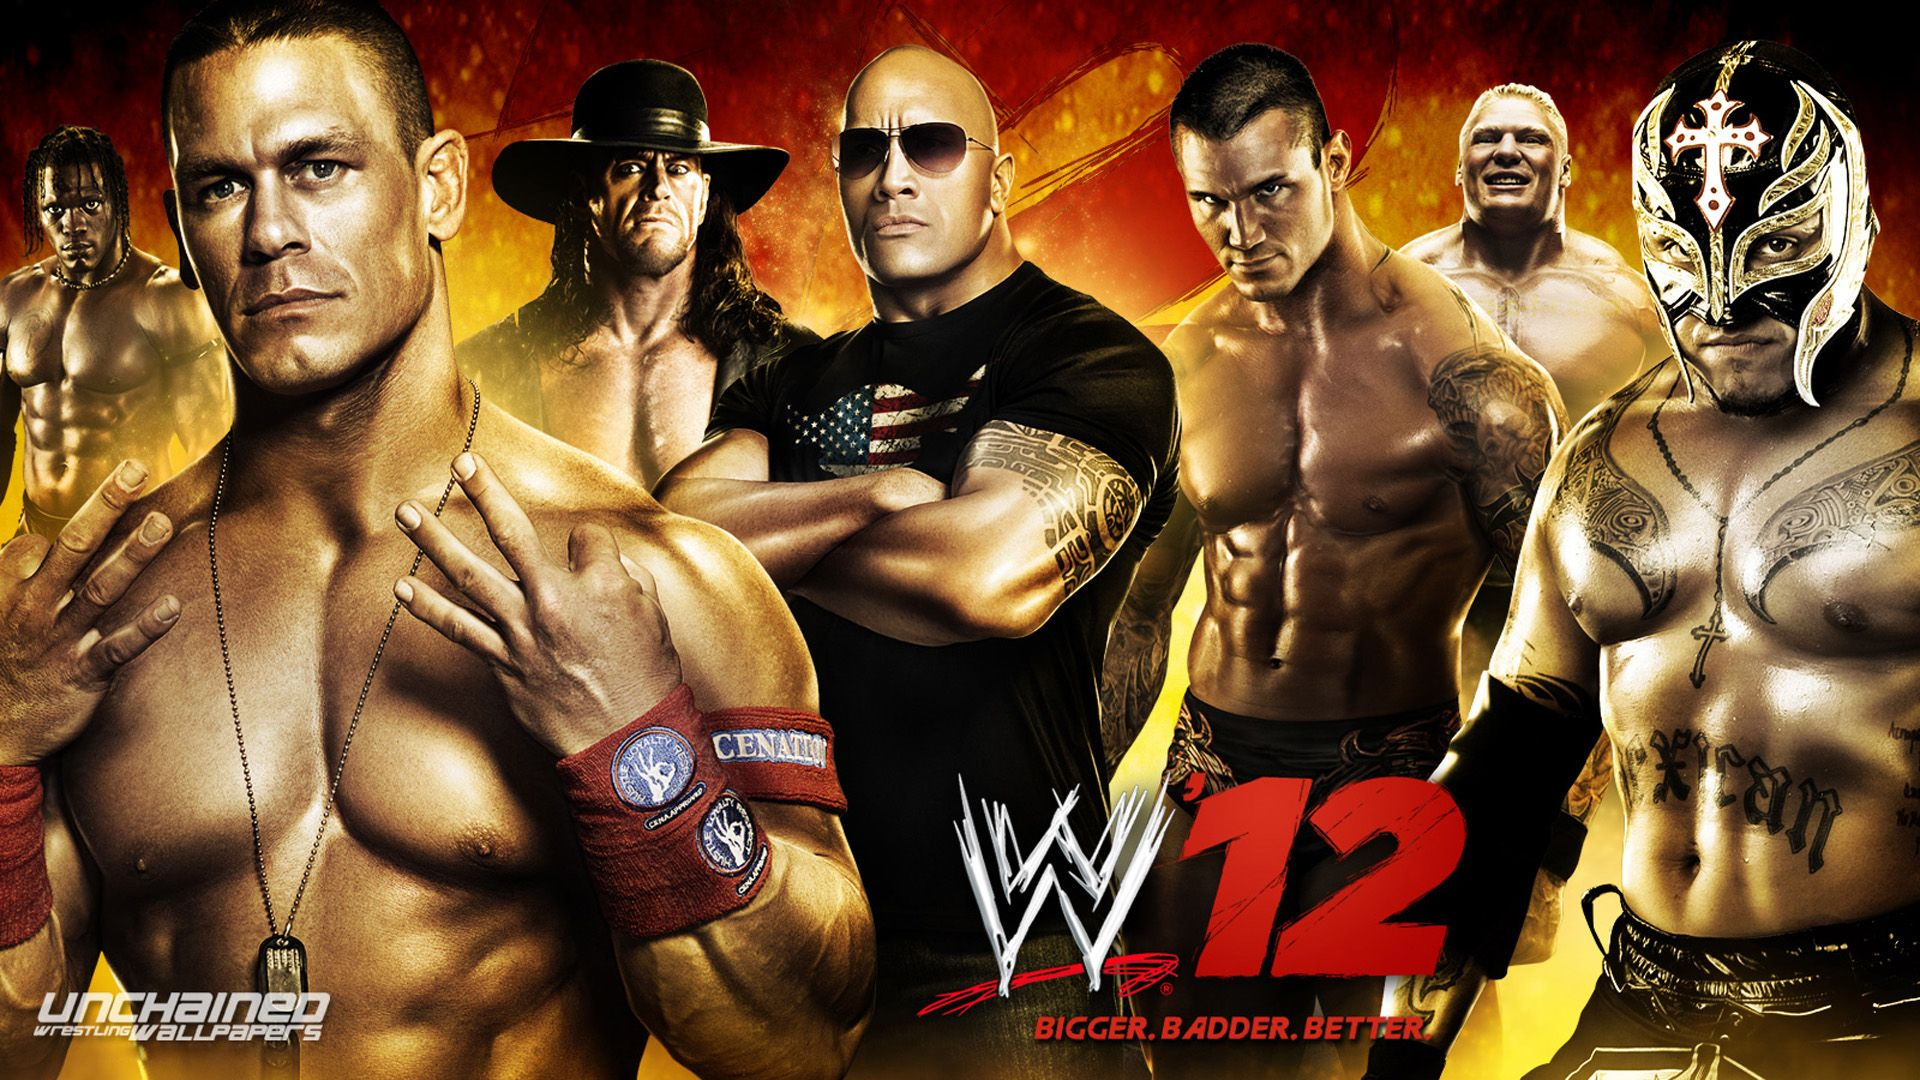 WWE HD wallpaper for download in laptop and desktop